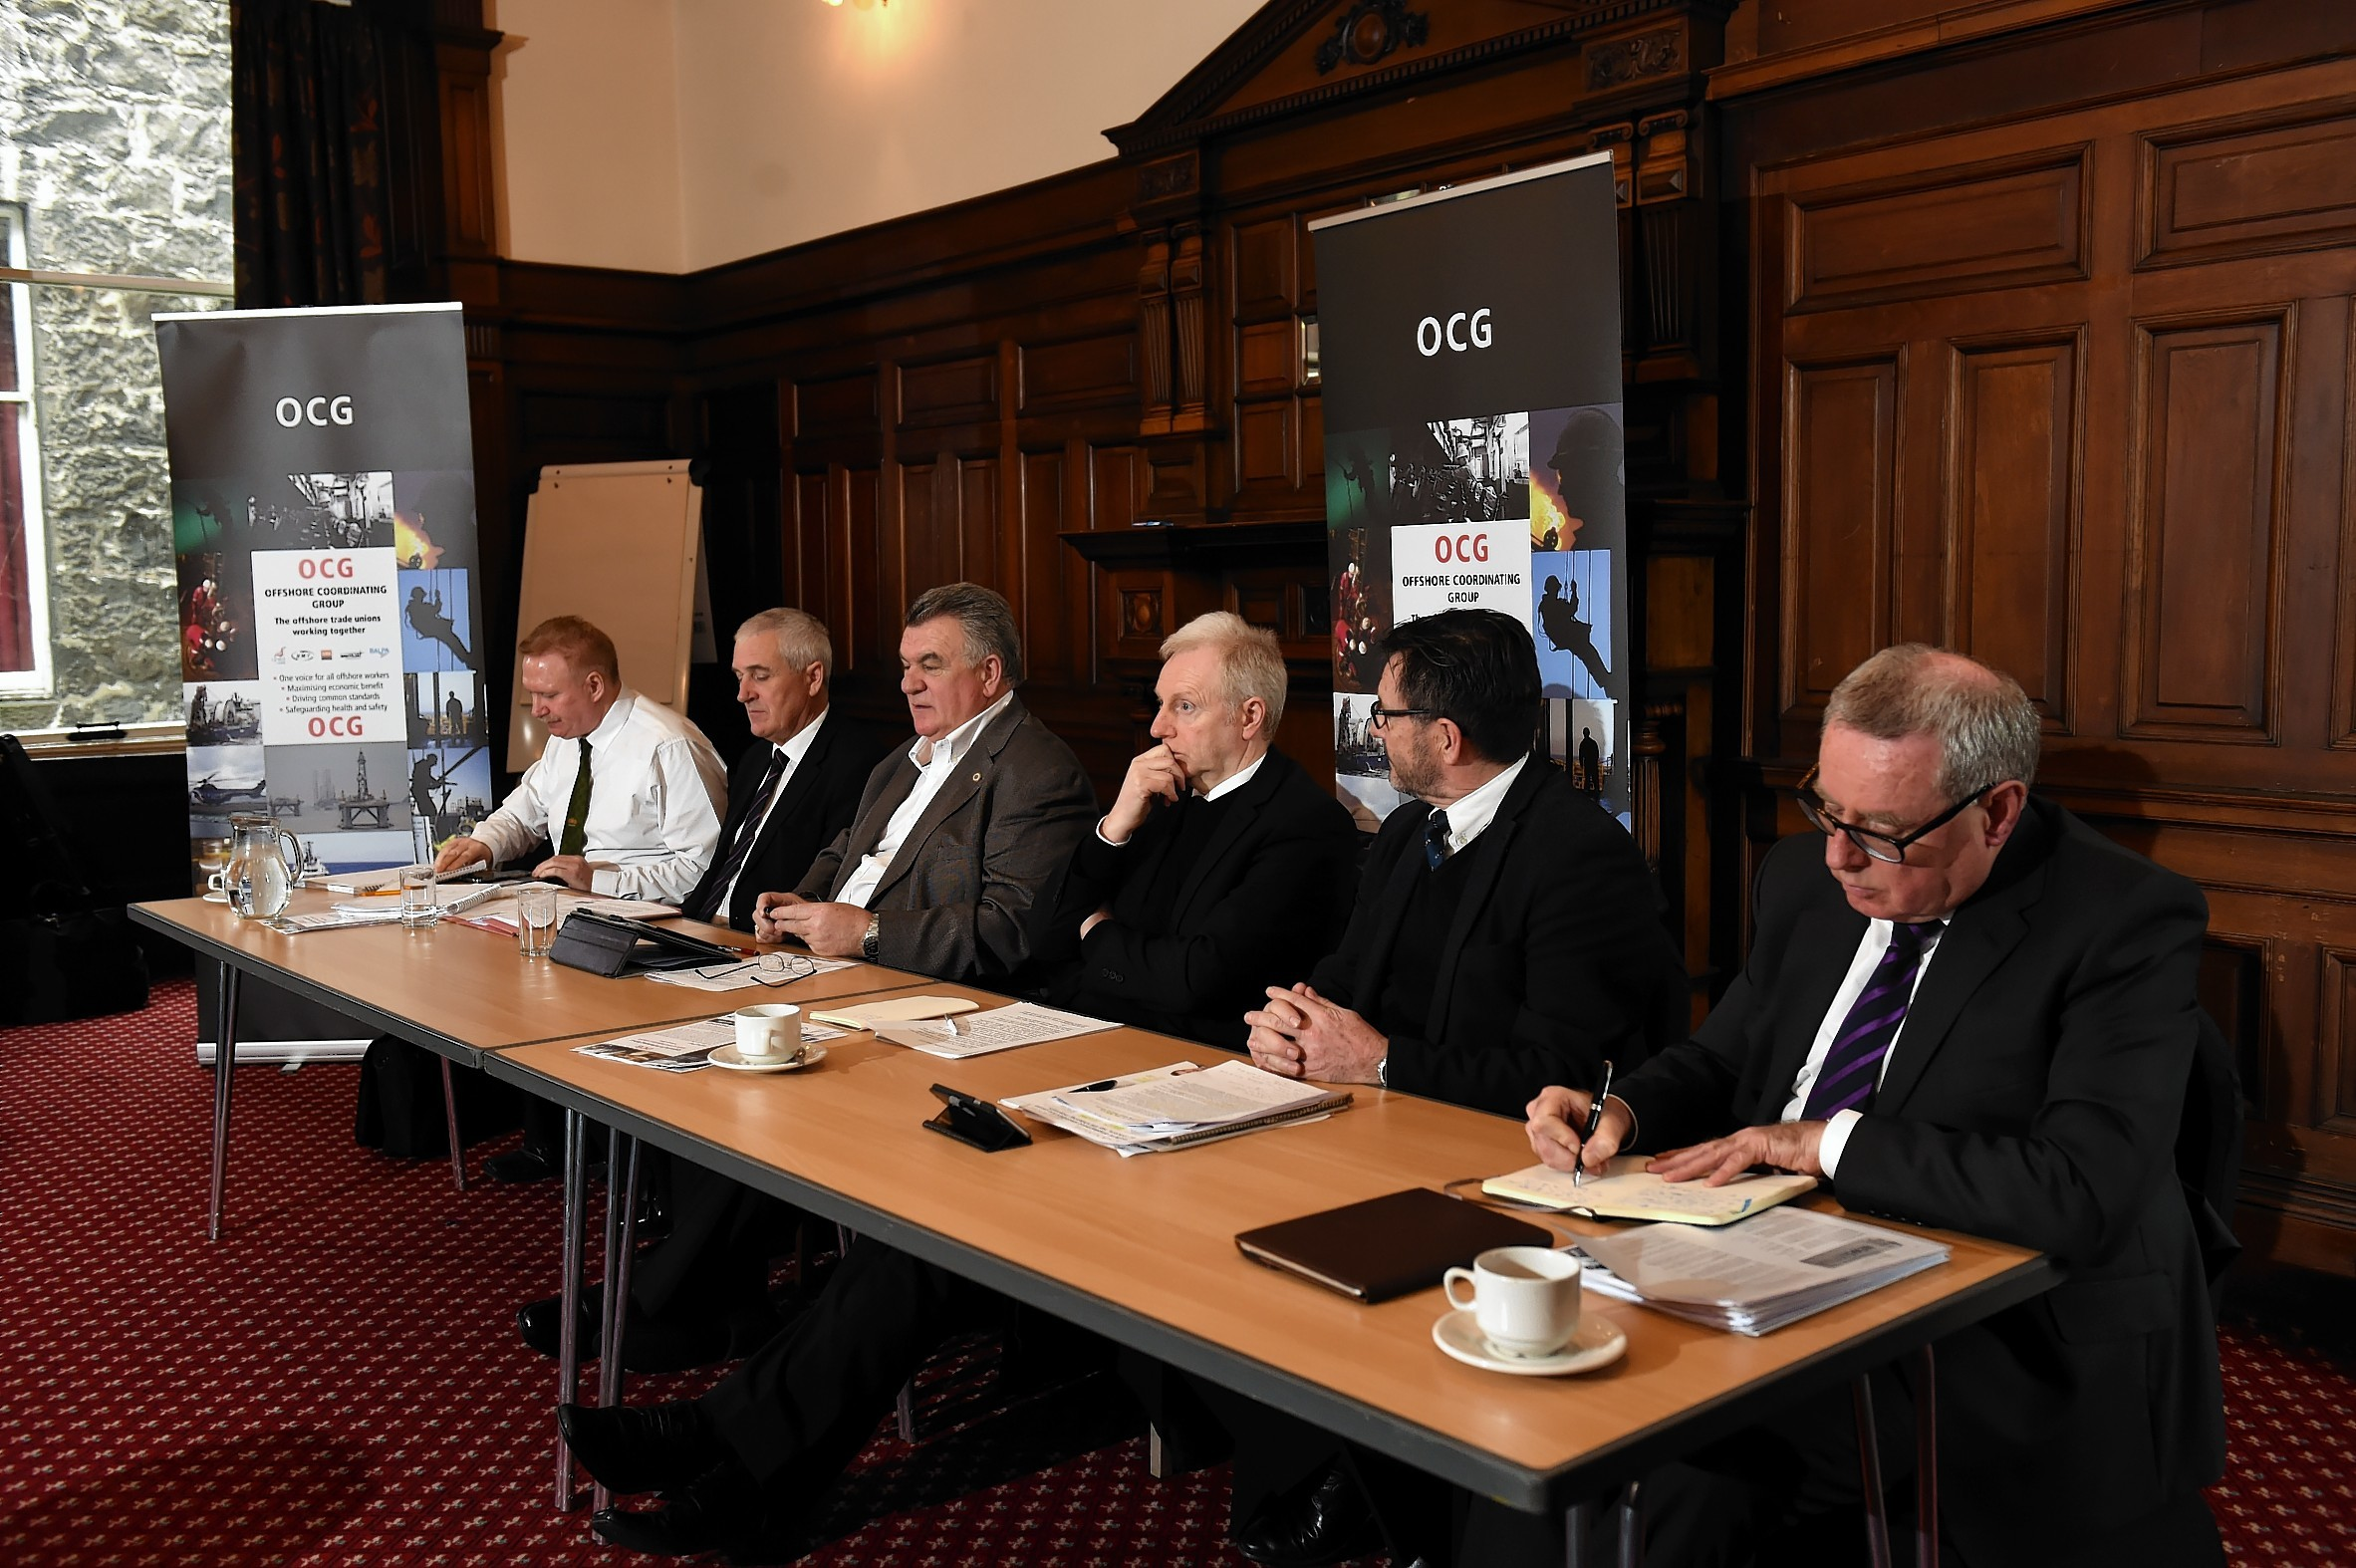 Pictured from left to right at the launch of the Offshore Co-ordinating Group: Alan Ritchie (GMB), Tommy Campbell, Stevie Todd (National Officer), Grahame Smith (STUC General Secretary), Steve Doran (Nautilus International), Jim McAuslan (General Secretary, BALPA).